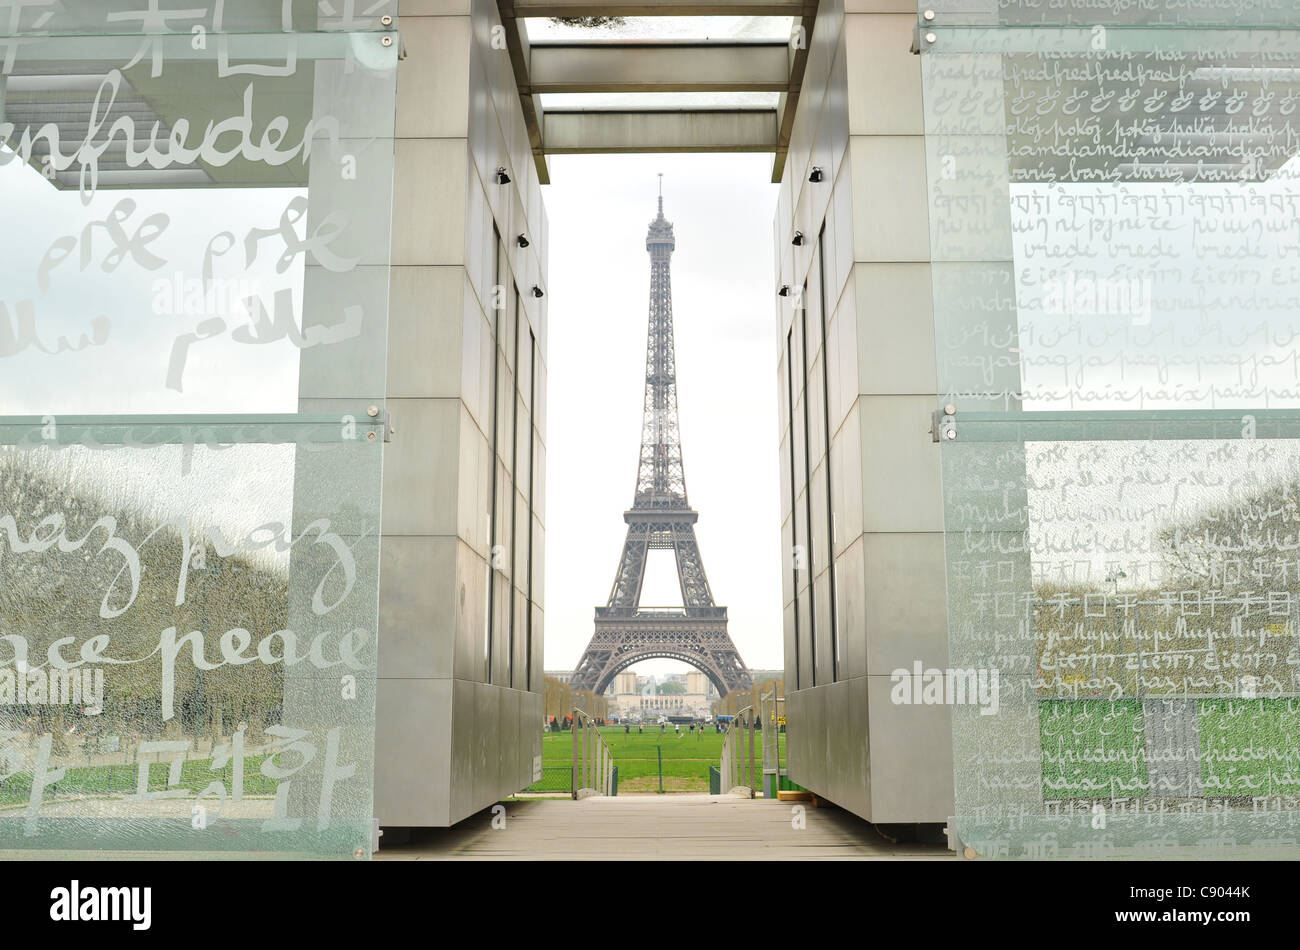 Eiffel Tower and Peace Monument - Stock Image